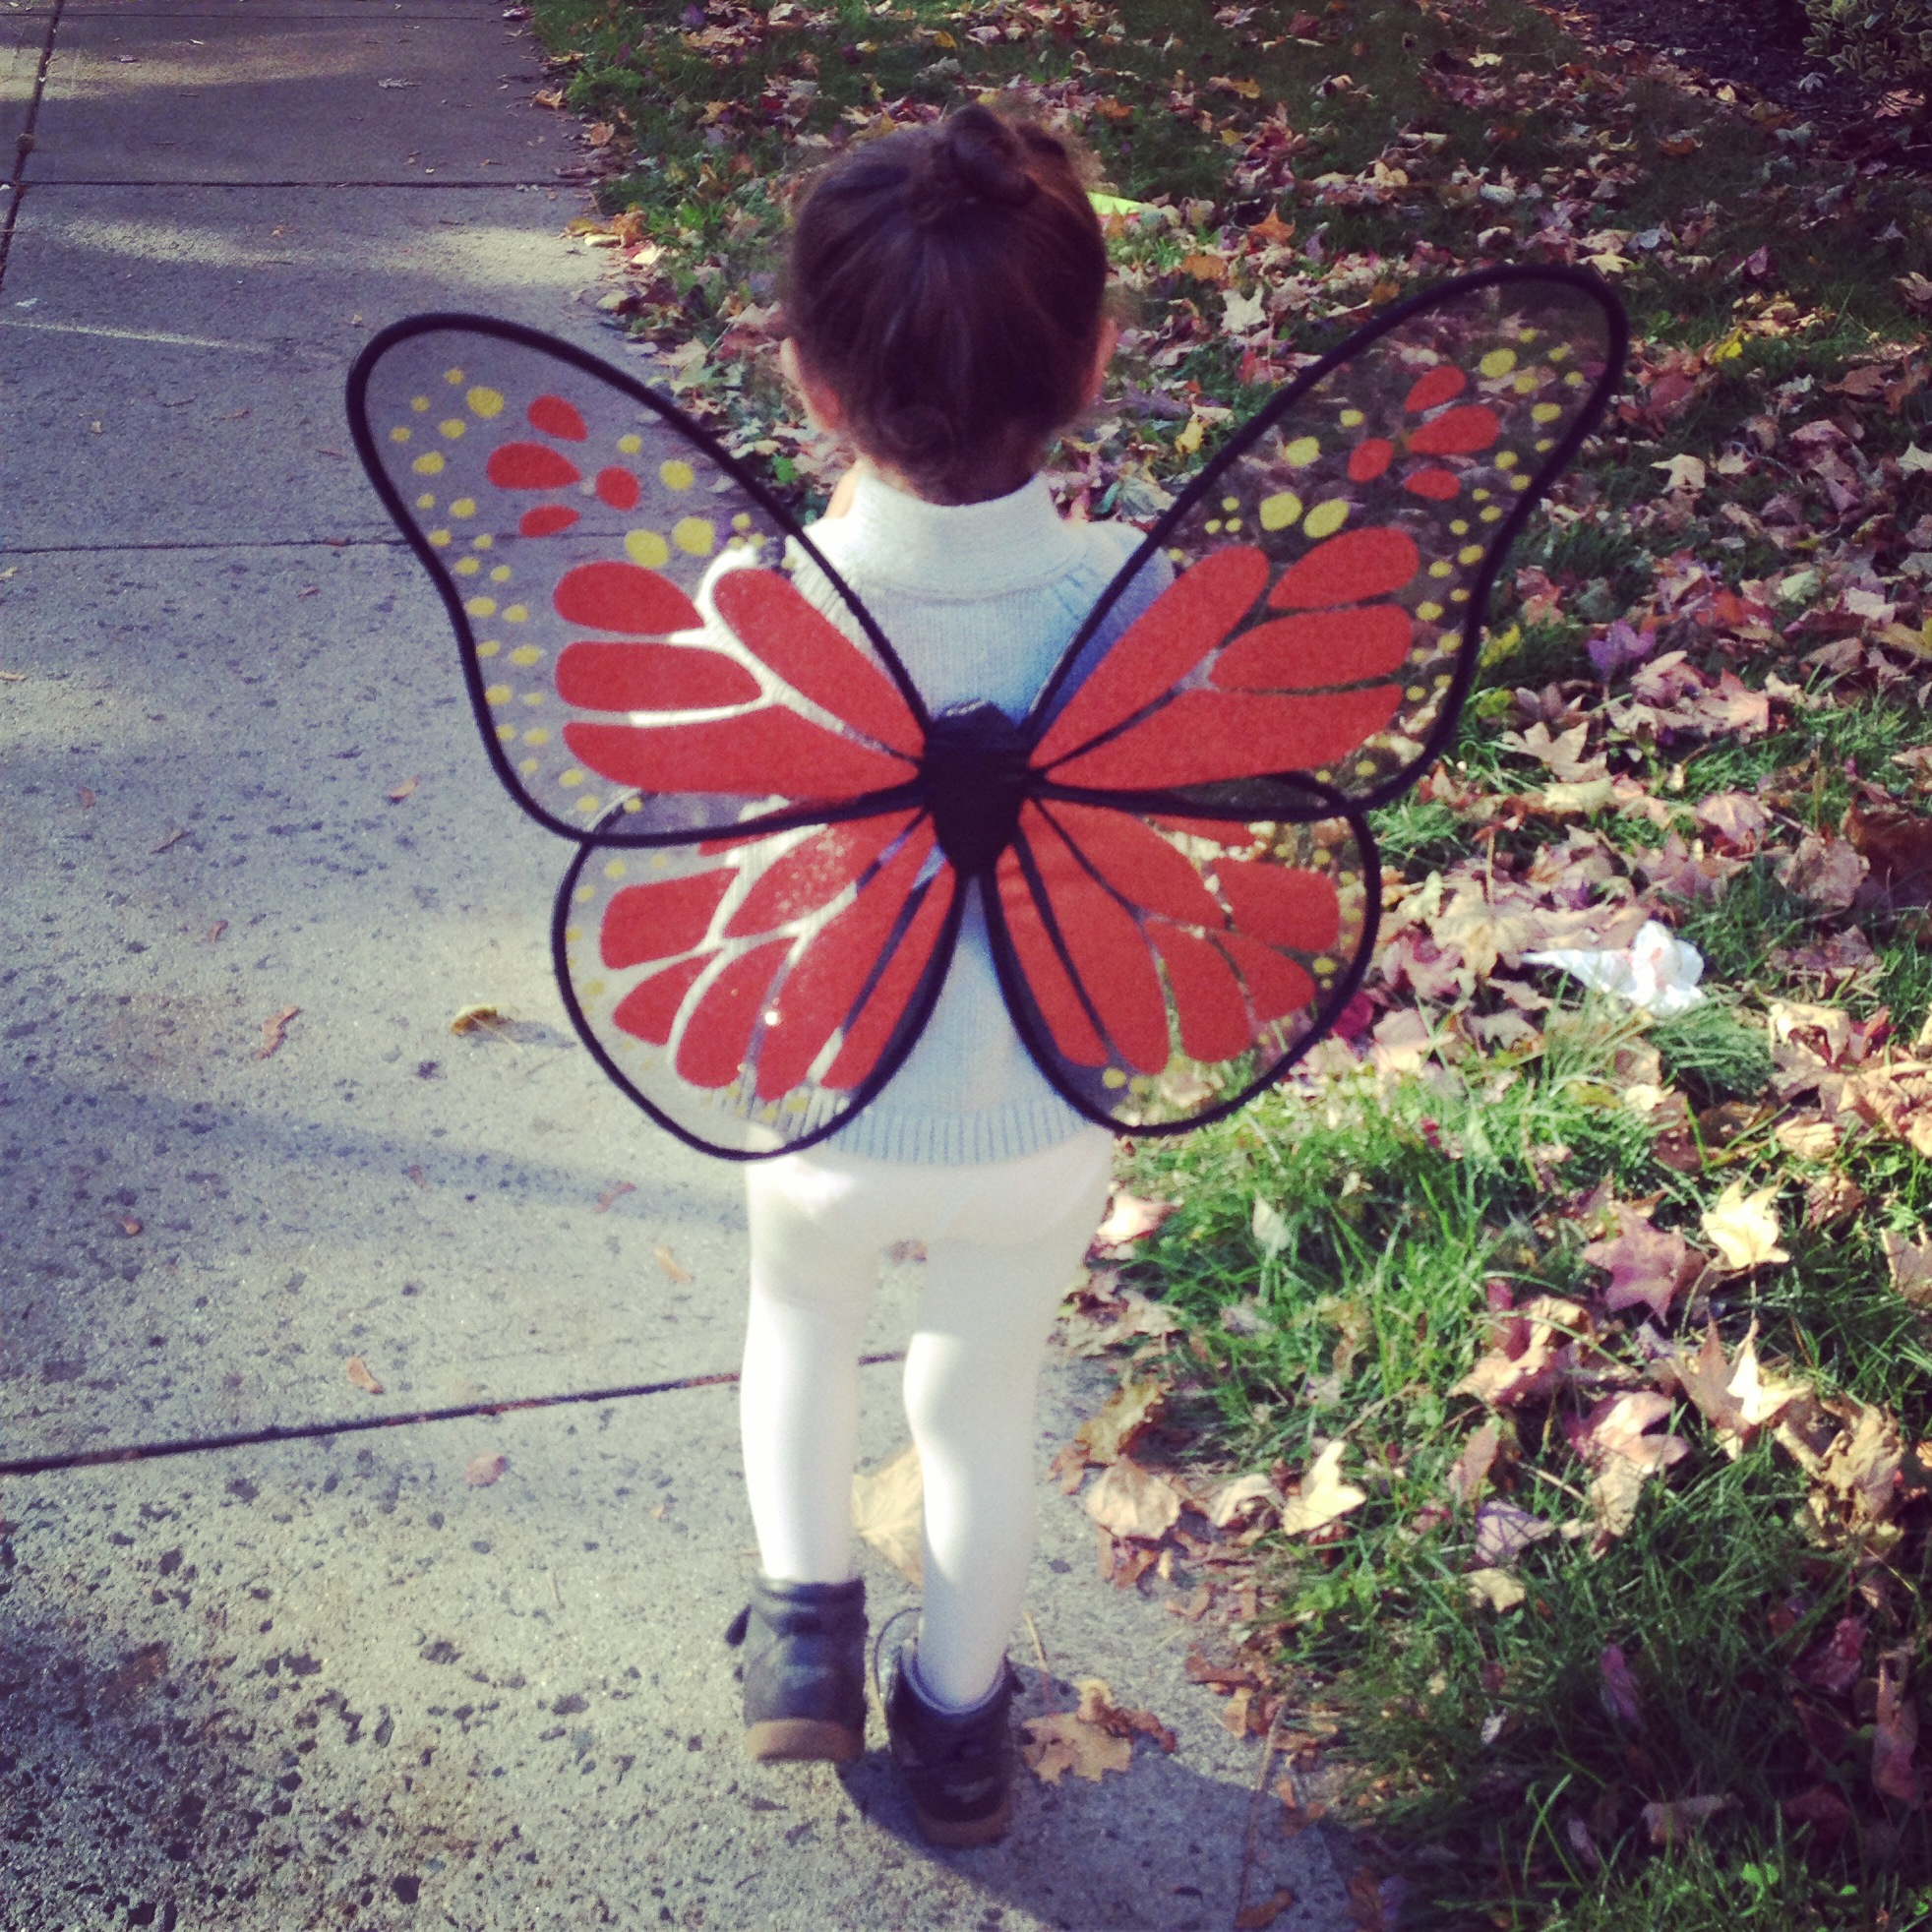 We're about to flutter away on our next adventure!